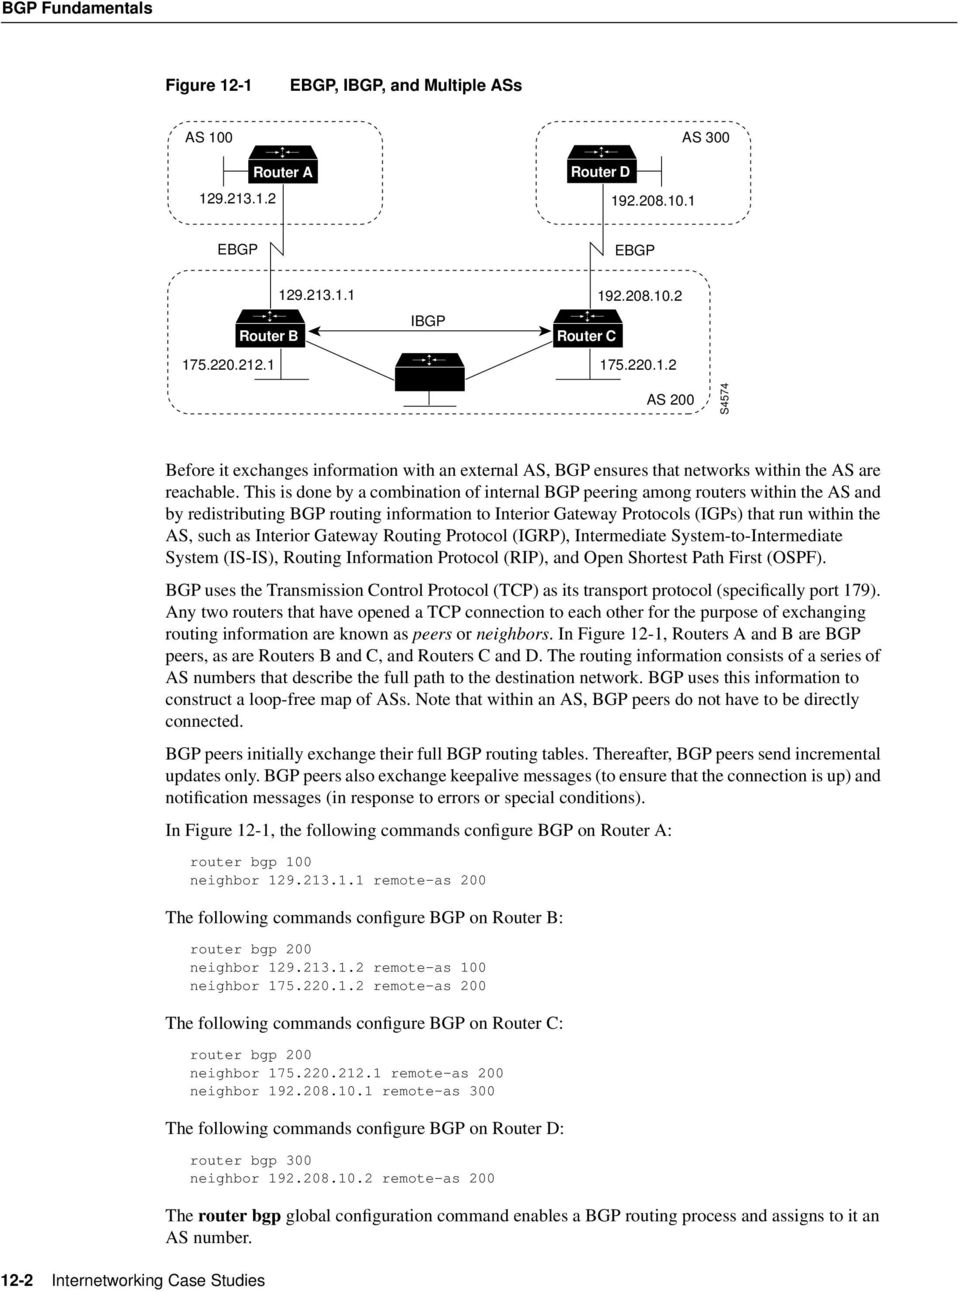 Interior Gateway Routing Protocol (IGRP), Intermediate System-to-Intermediate System (IS-IS), Routing Information Protocol (RIP), and Open Shortest Path First (OSPF).